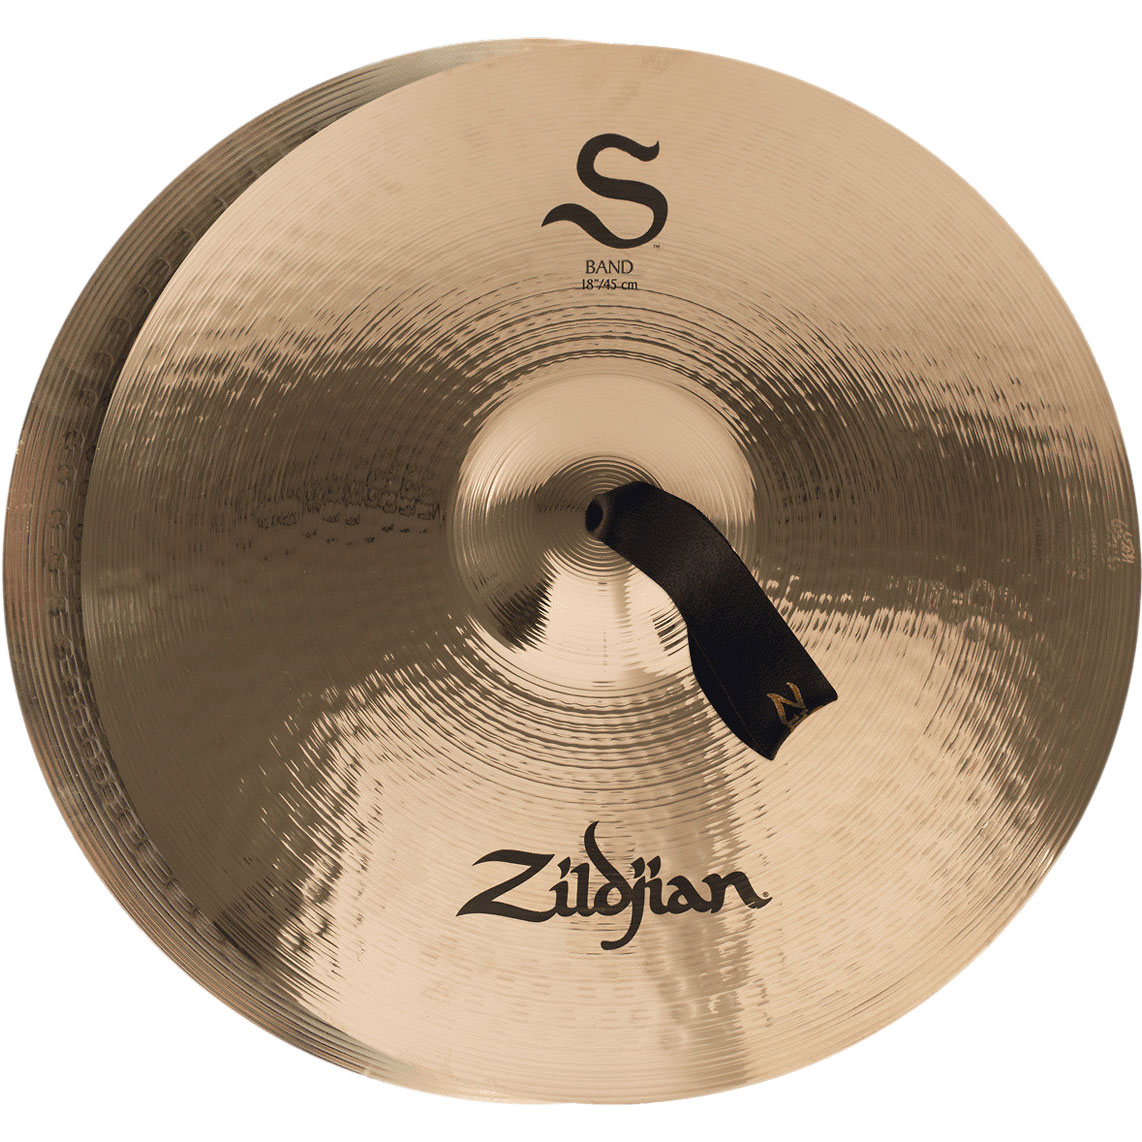 "Zildjian 18"" S Family Band Crash Cymbal Pair"